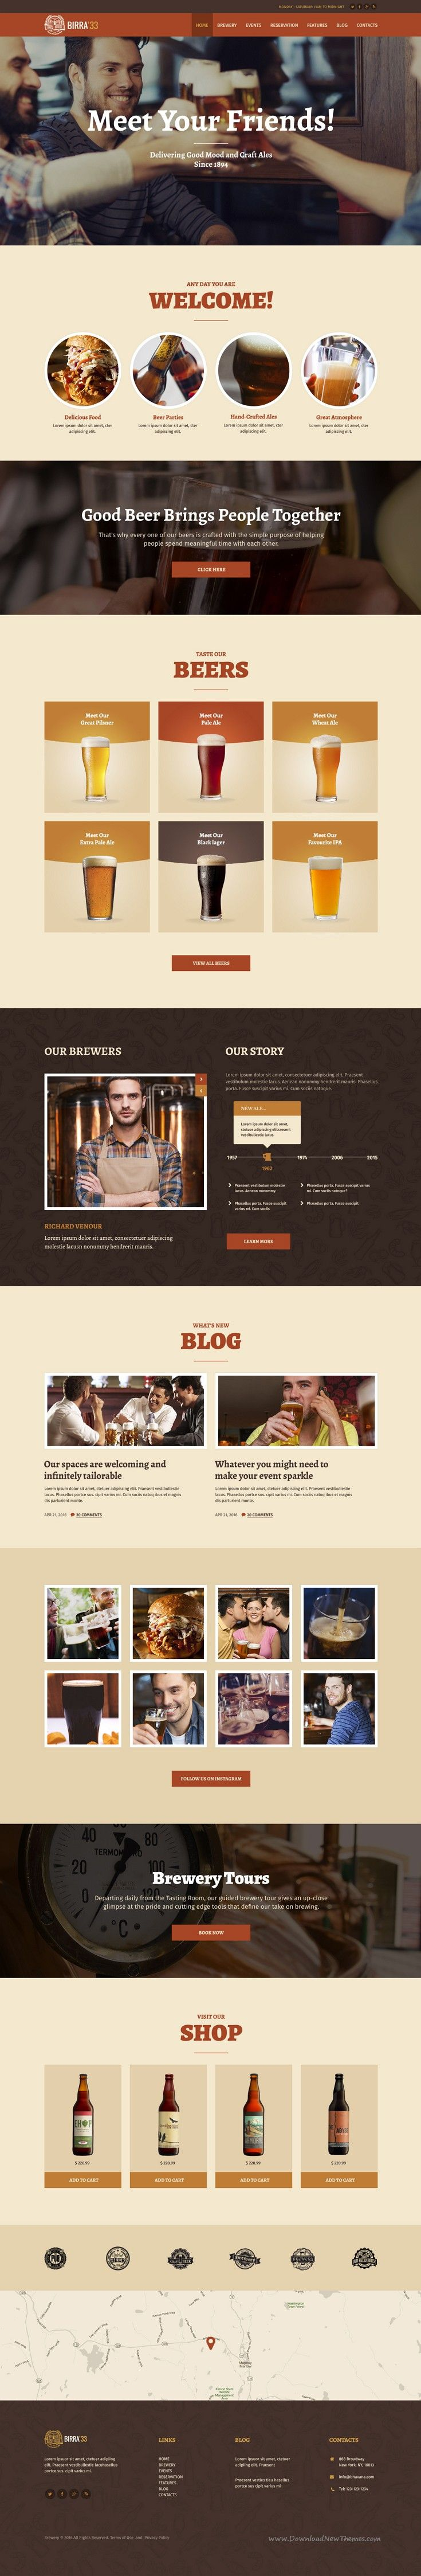 Birra33 is modern and clean WordPress theme created for your #Brewery, #Brewpub, Craft Beer Shop, #Beer Garden & Festival #website. Download Now!